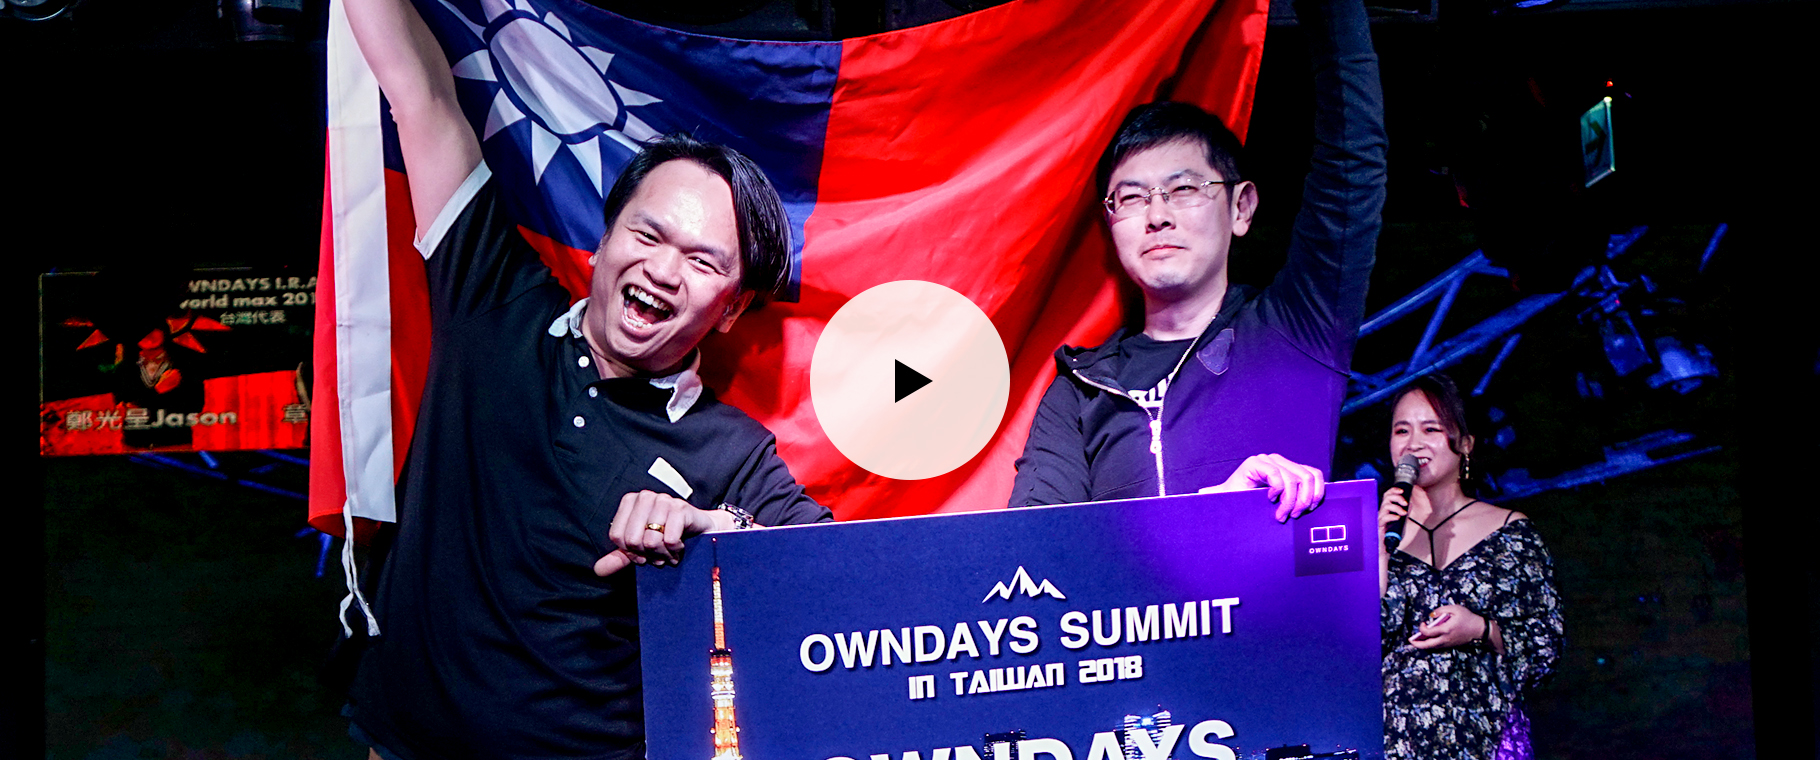 OWNDAYS SUMMIT IN TAIWAN 2018 動画